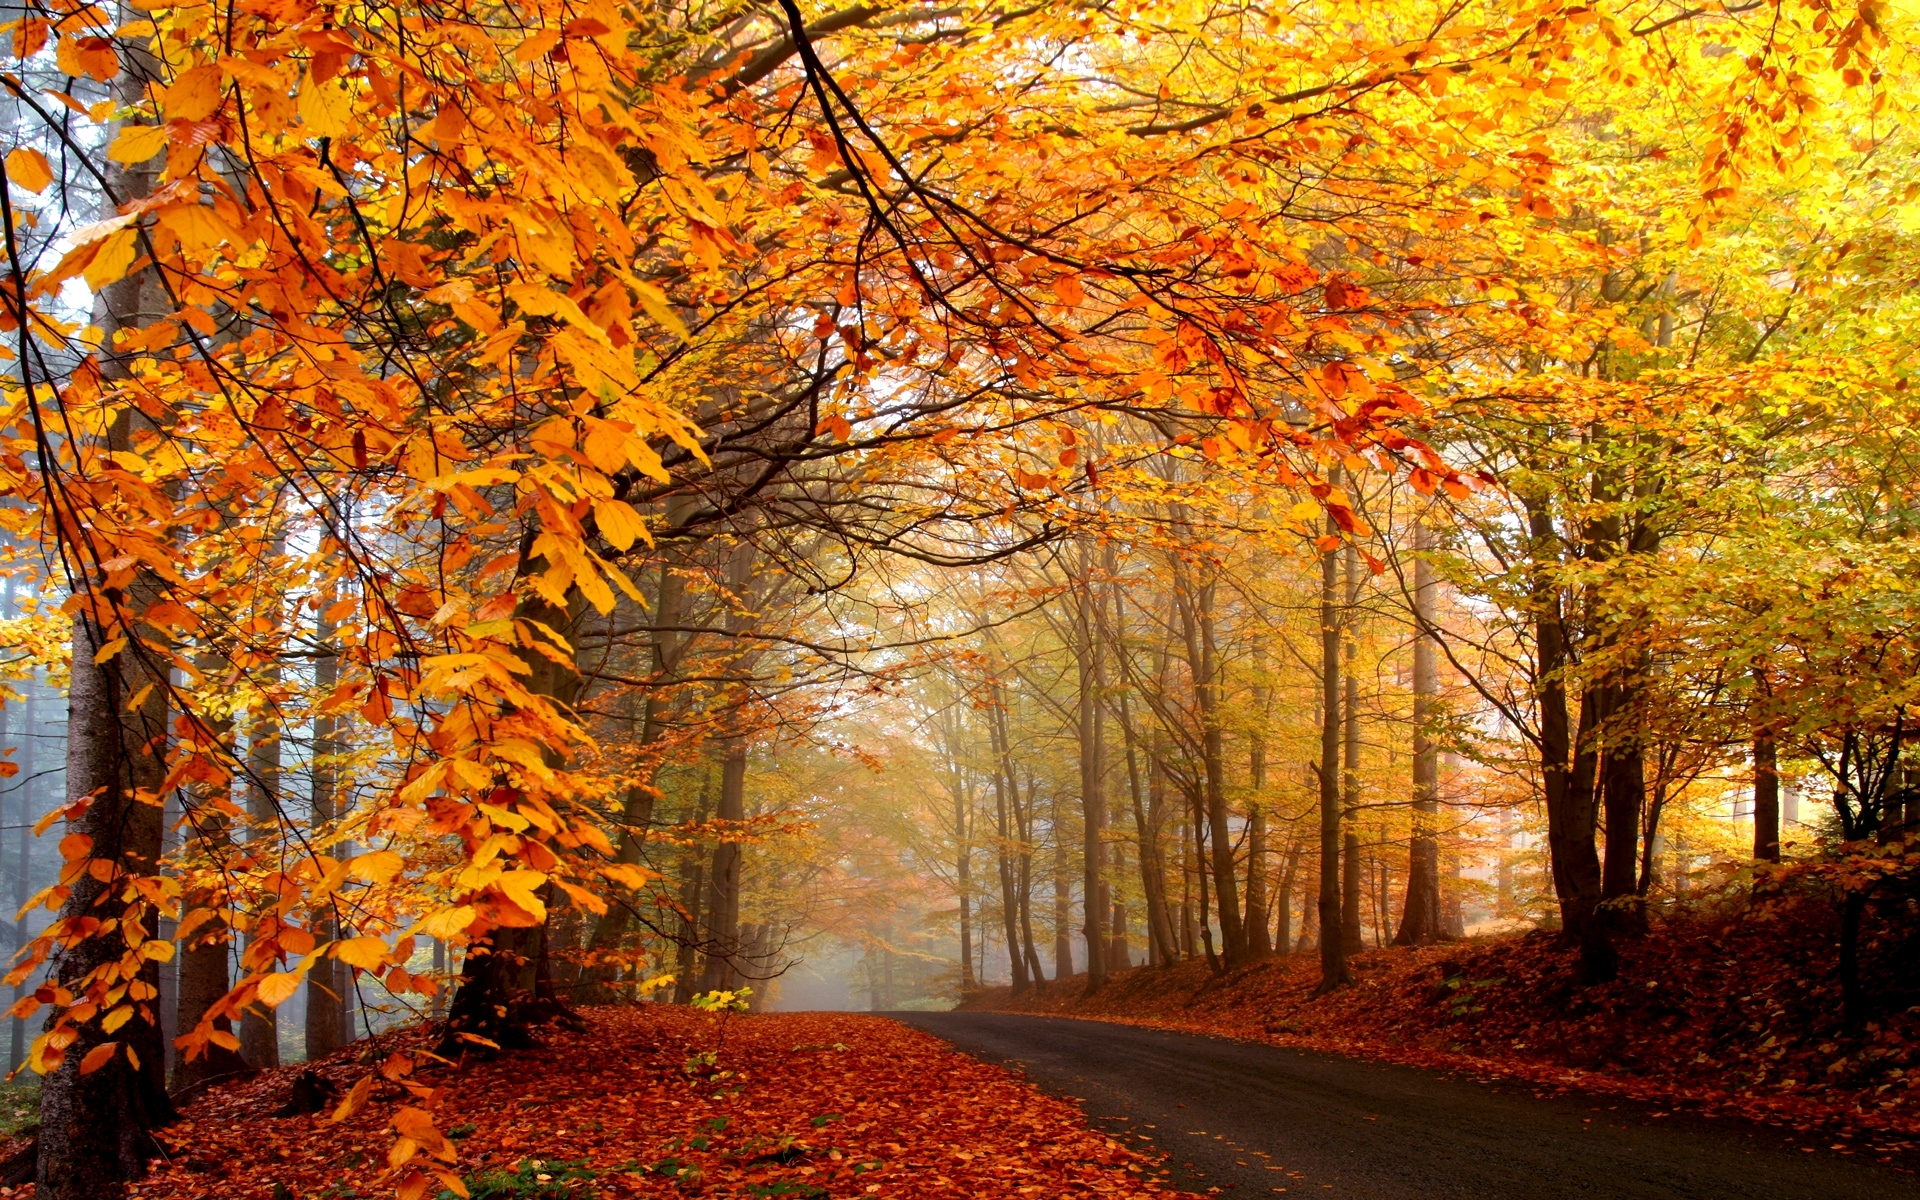 Autumn road clipart.